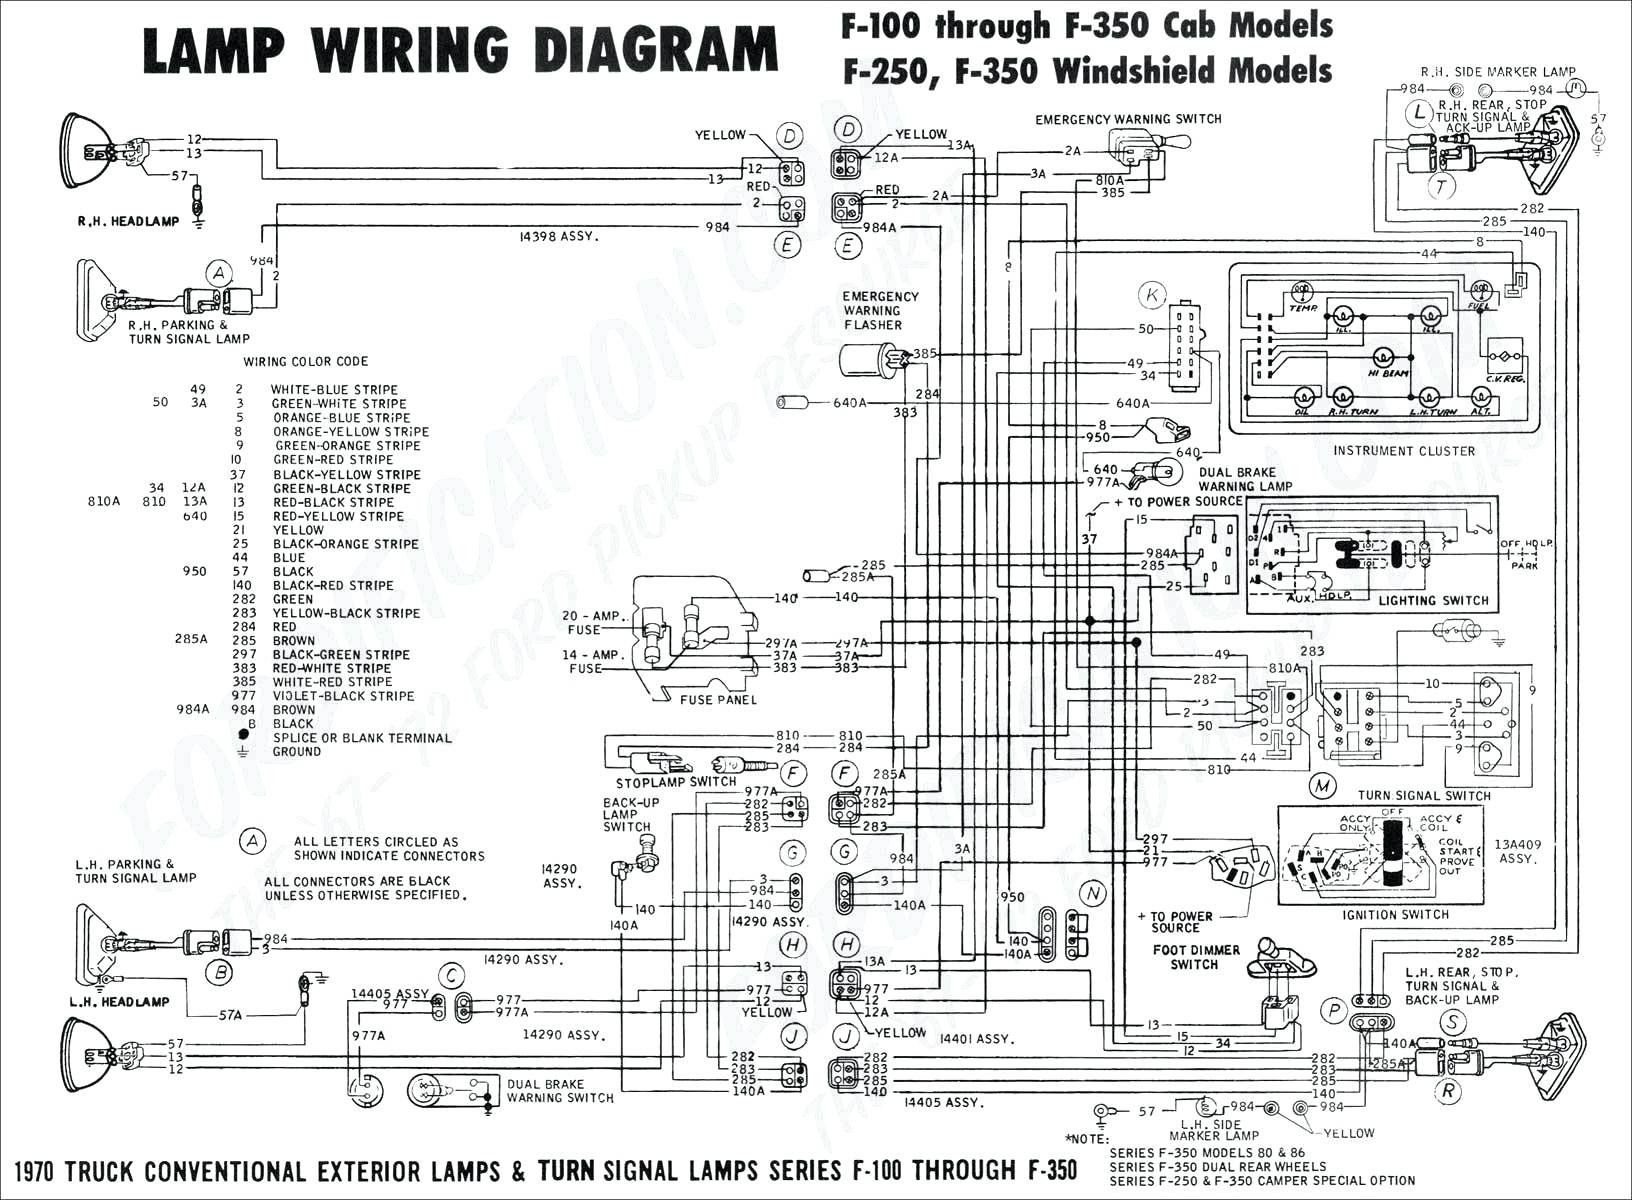 ford f250 wiring schematic | wiring diagram  wiring diagram - autoscout24